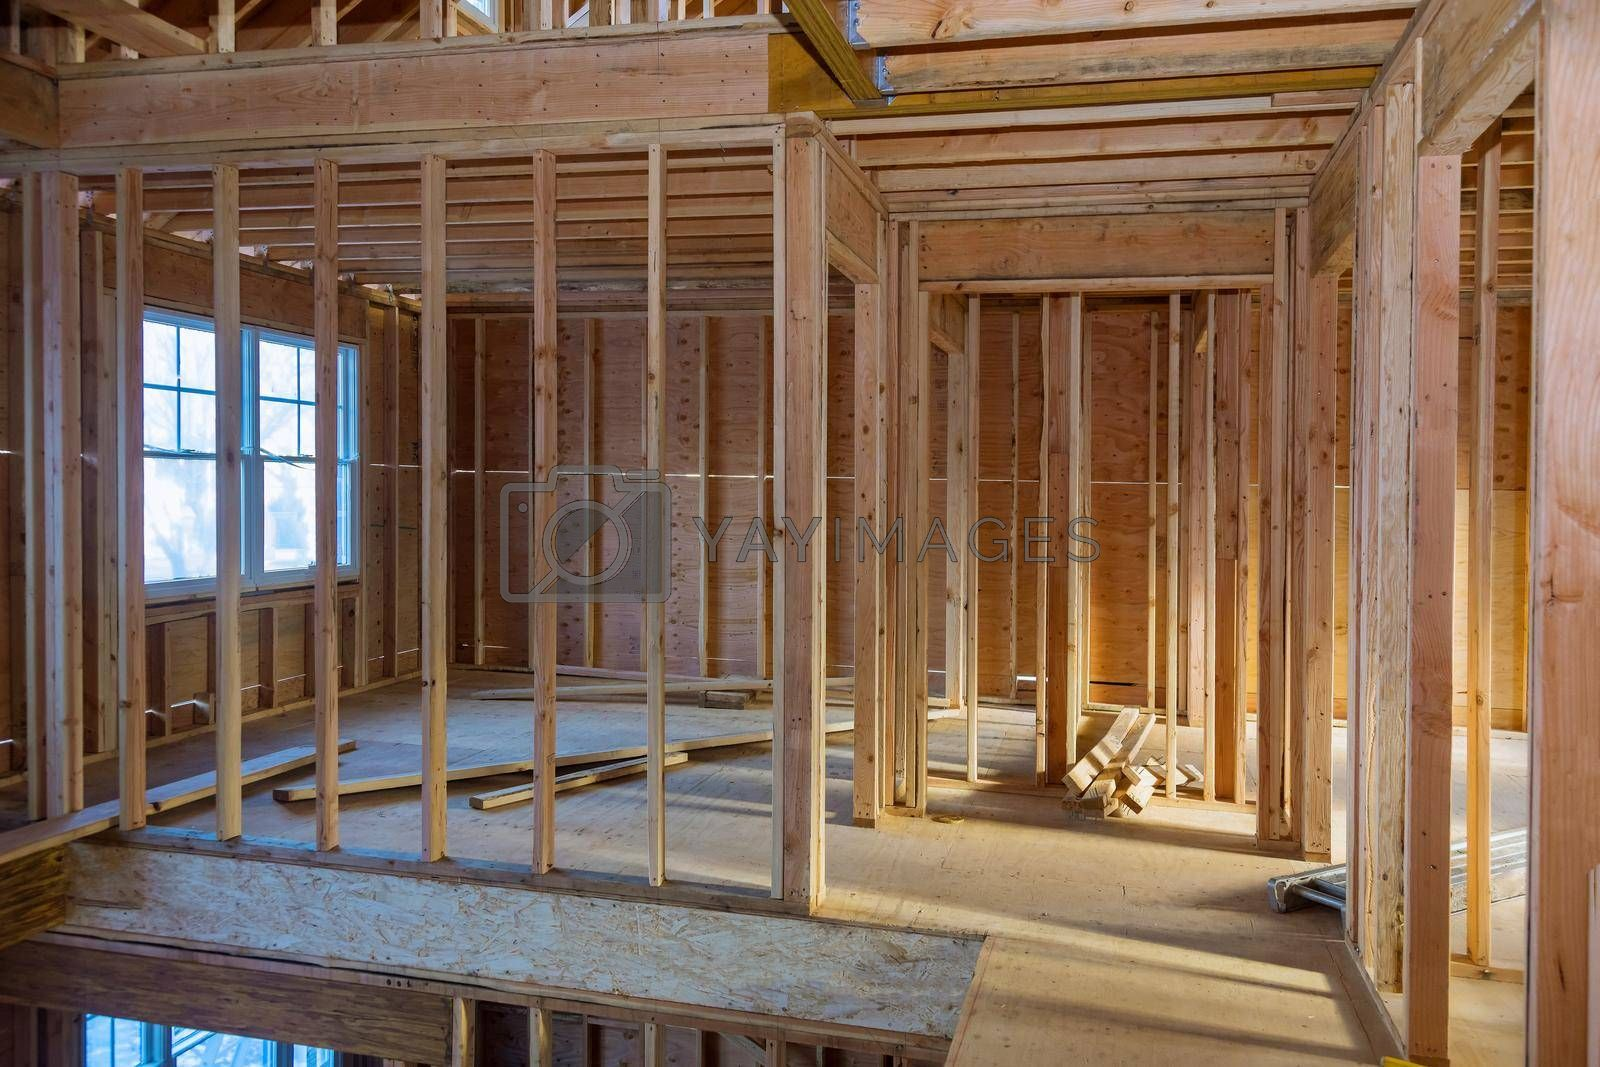 Interior wood framework beam construction of new residential home under construction